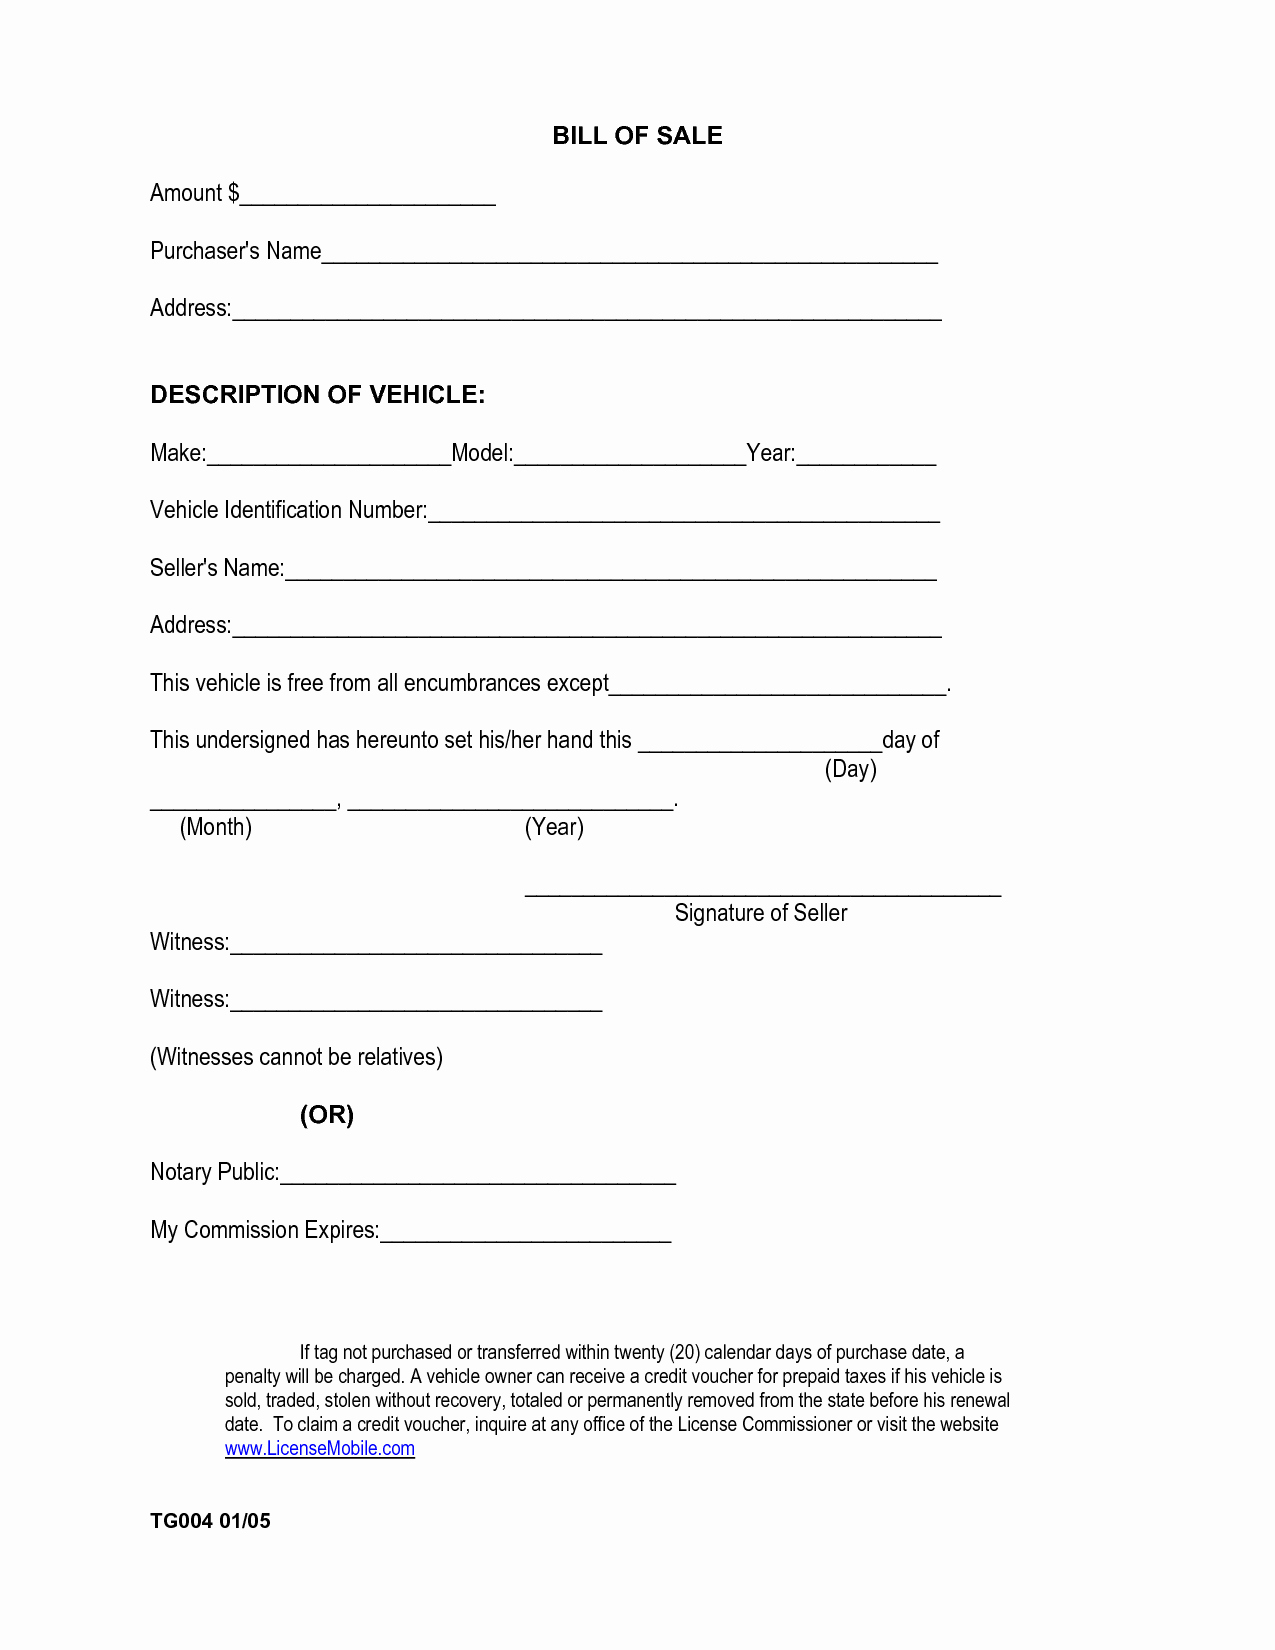 Bill Of Sale form Example Elegant Free Printable Car Bill Of Sale form Generic